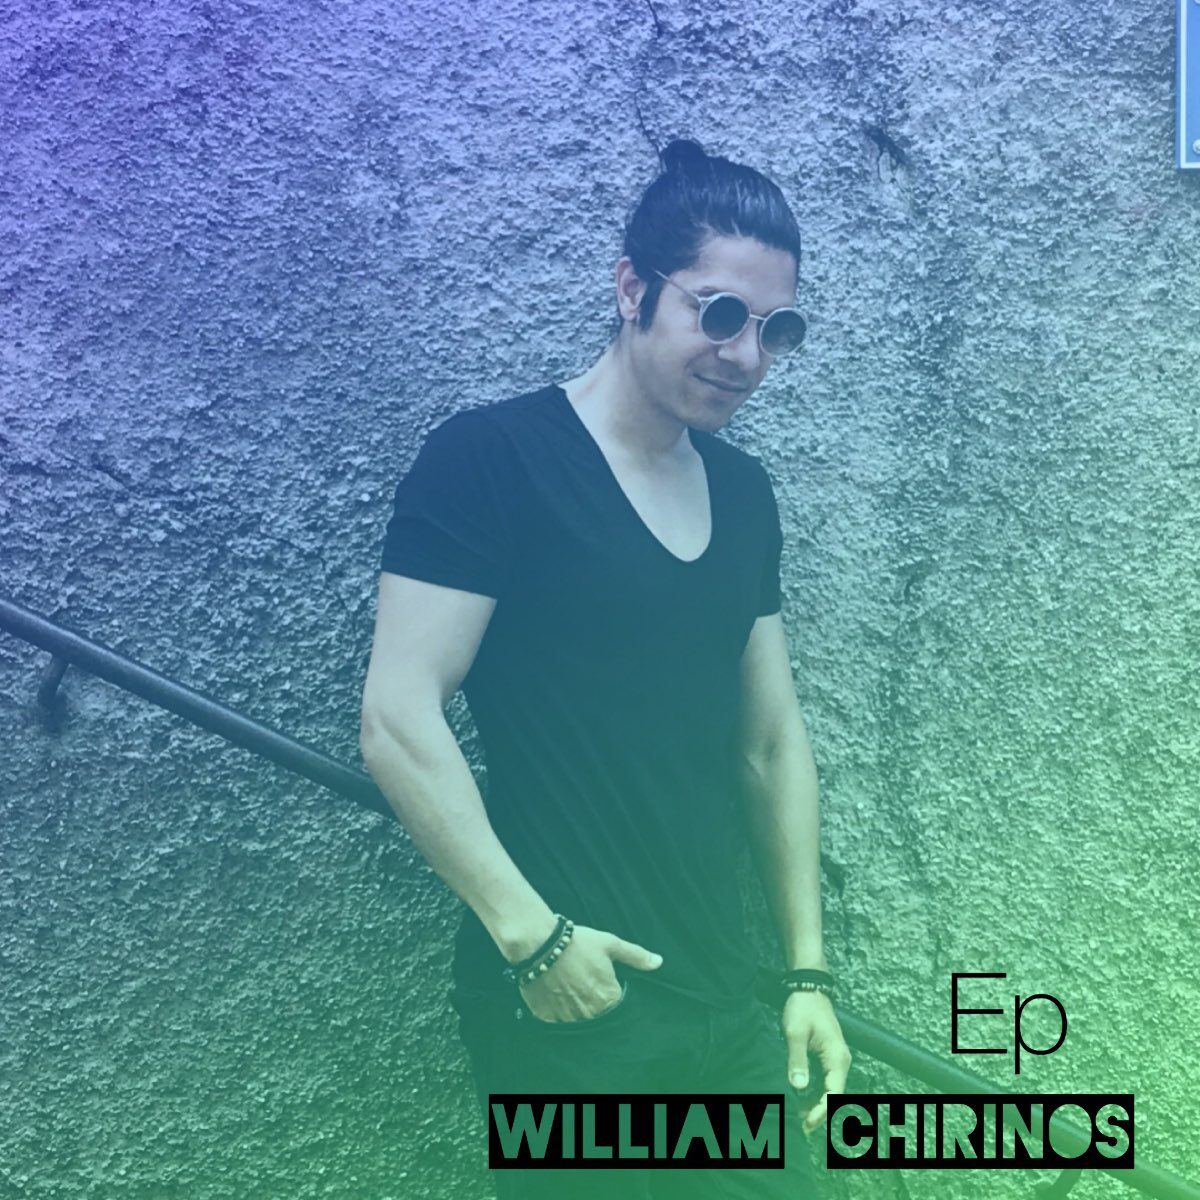 EP William Chirinos | 7 June 2019